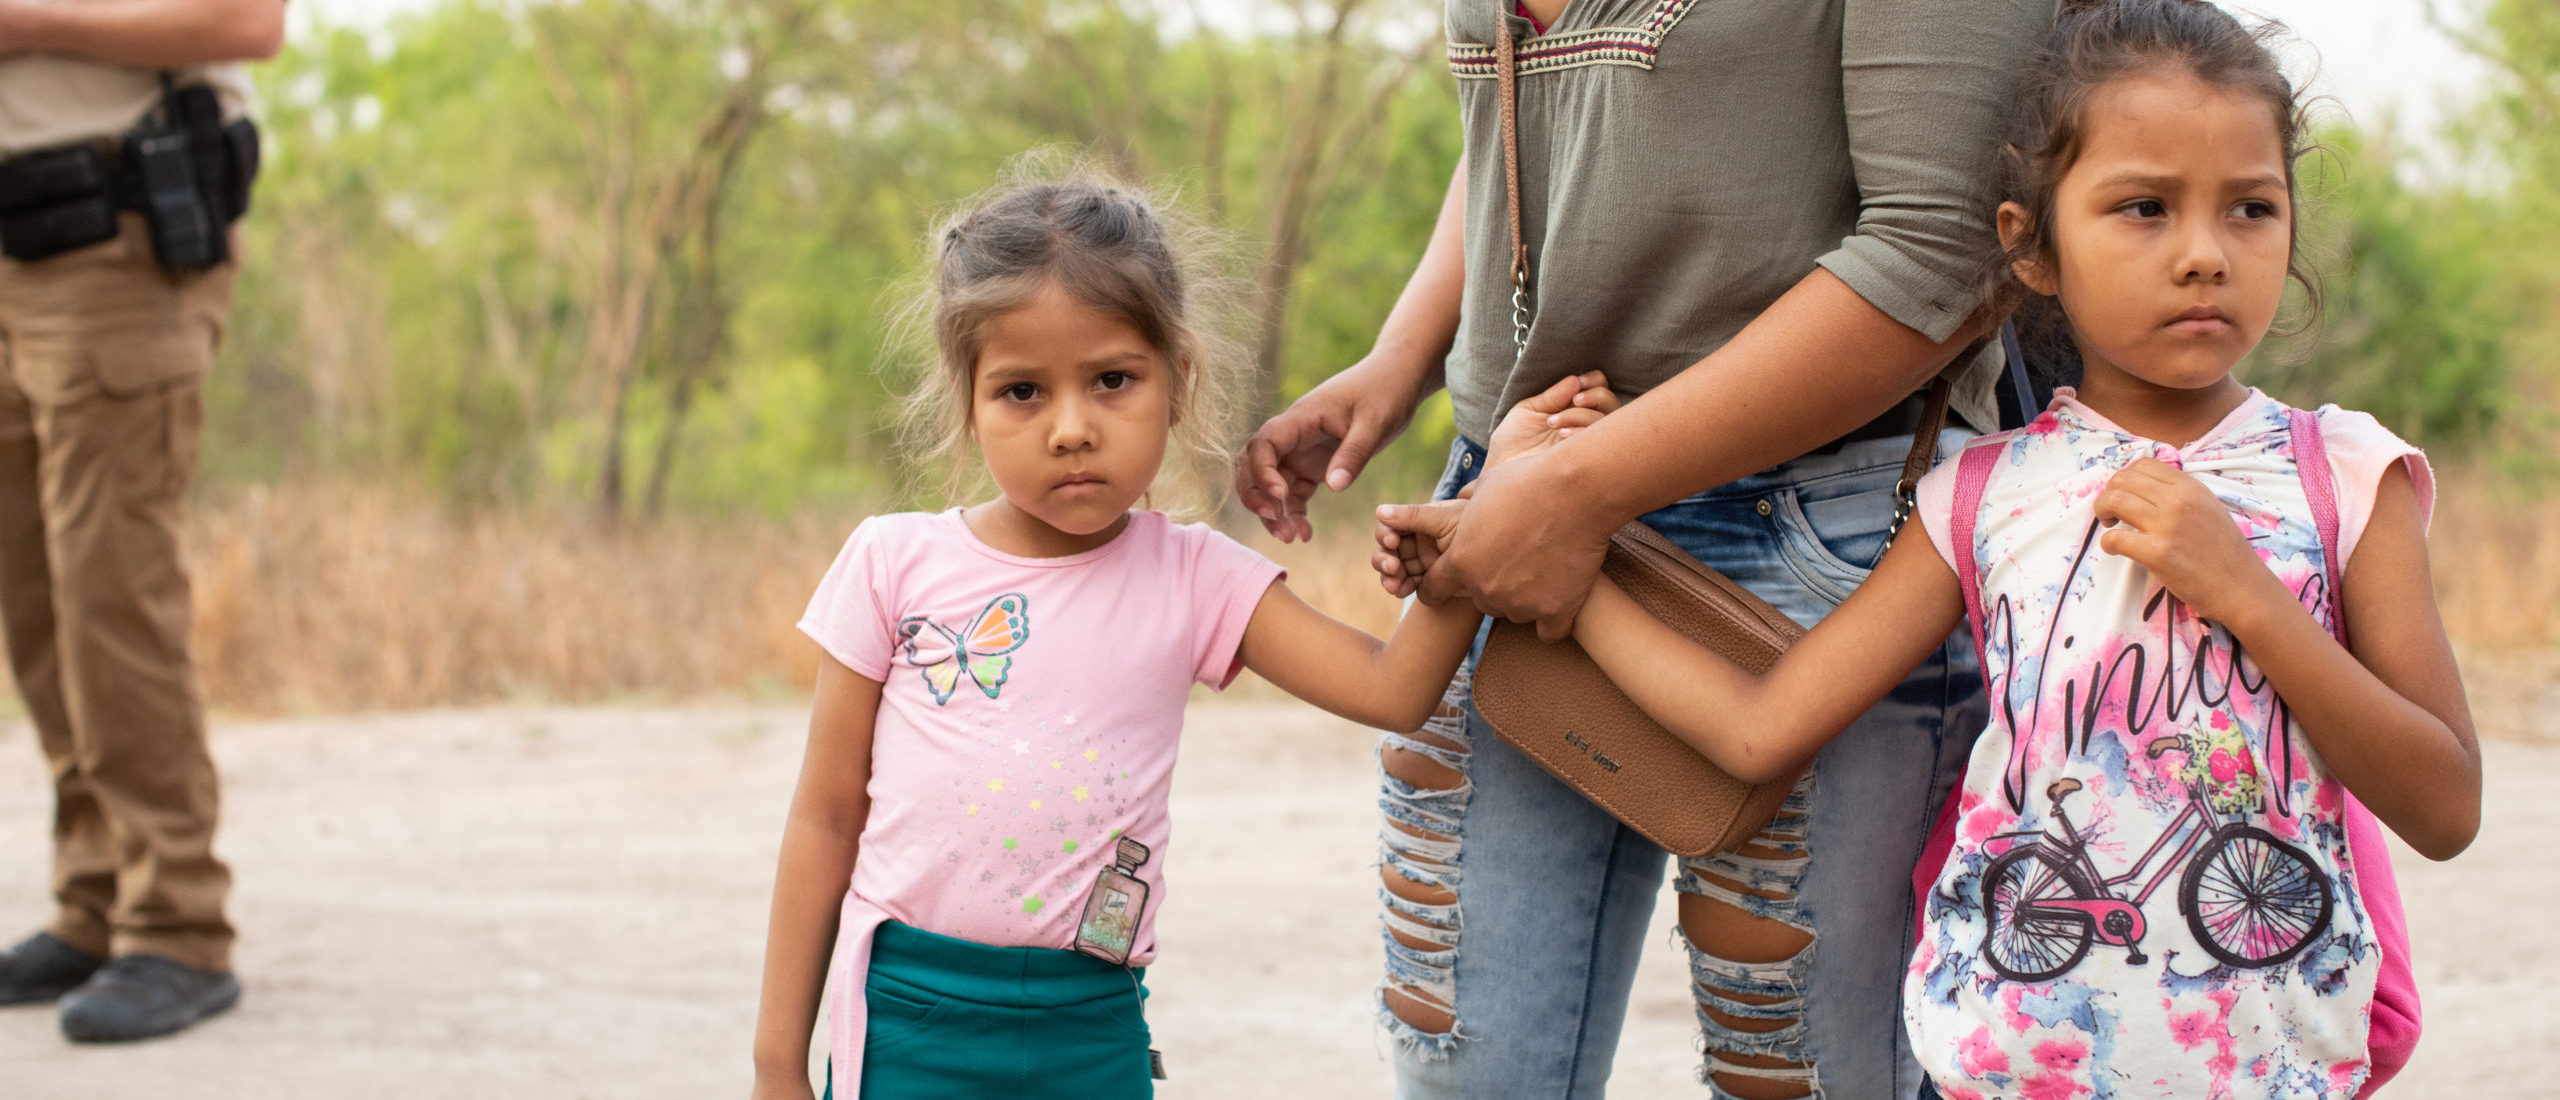 Immigration Advocates Silent As Detained Migrant Children Allegedly Cut Wrists, Suffer Panic Attacks